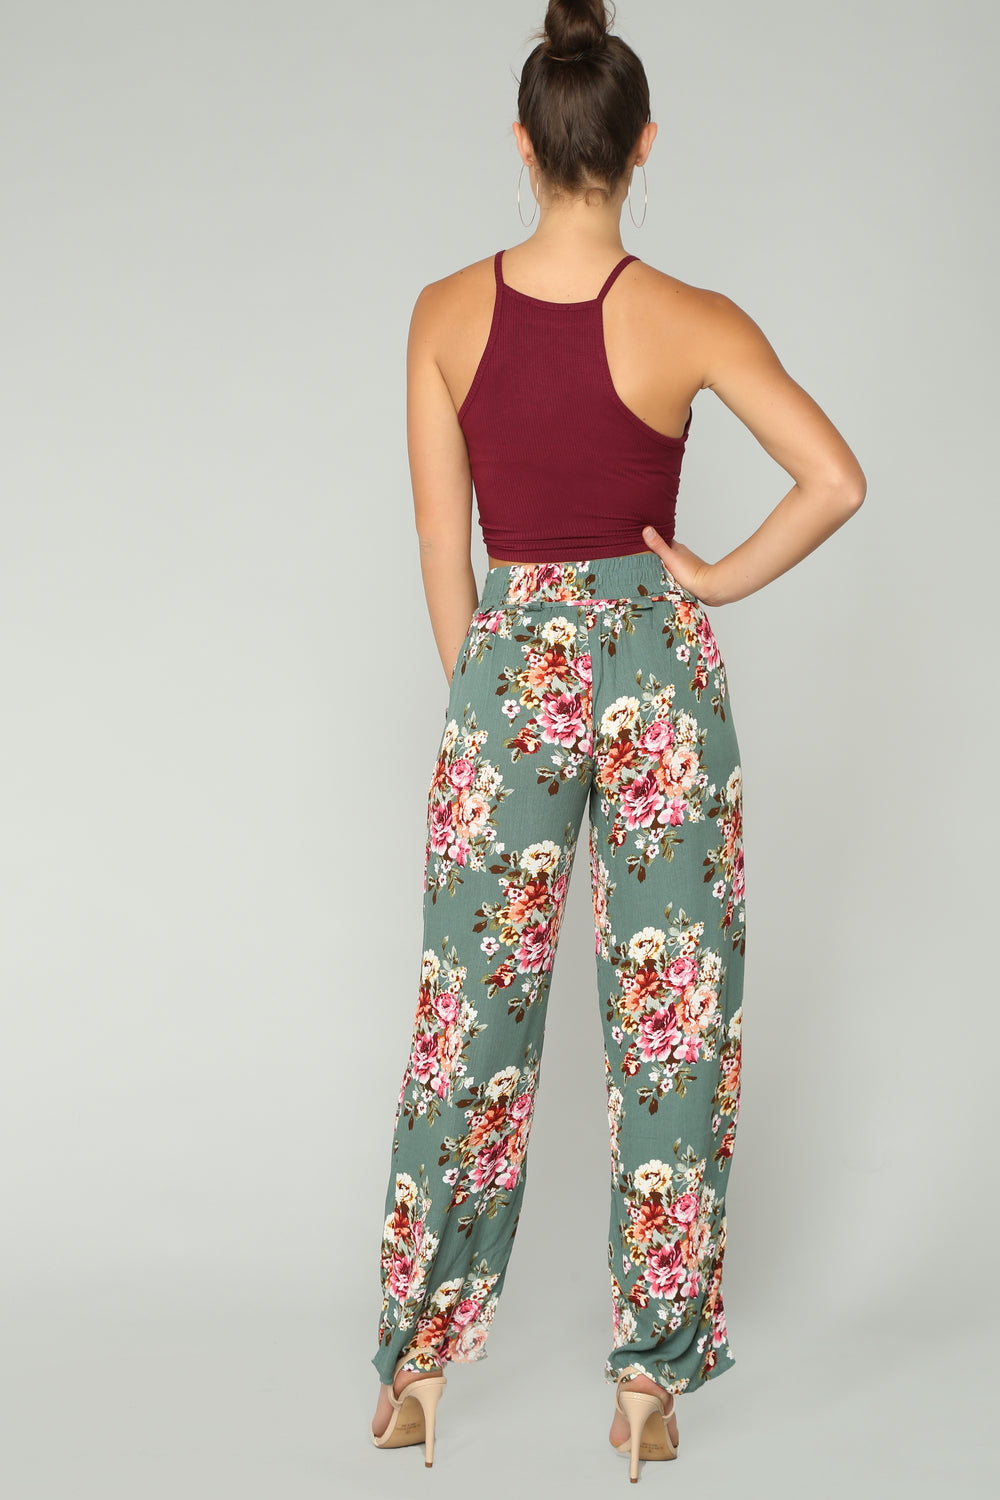 Floral Frenzy Pants - Sage